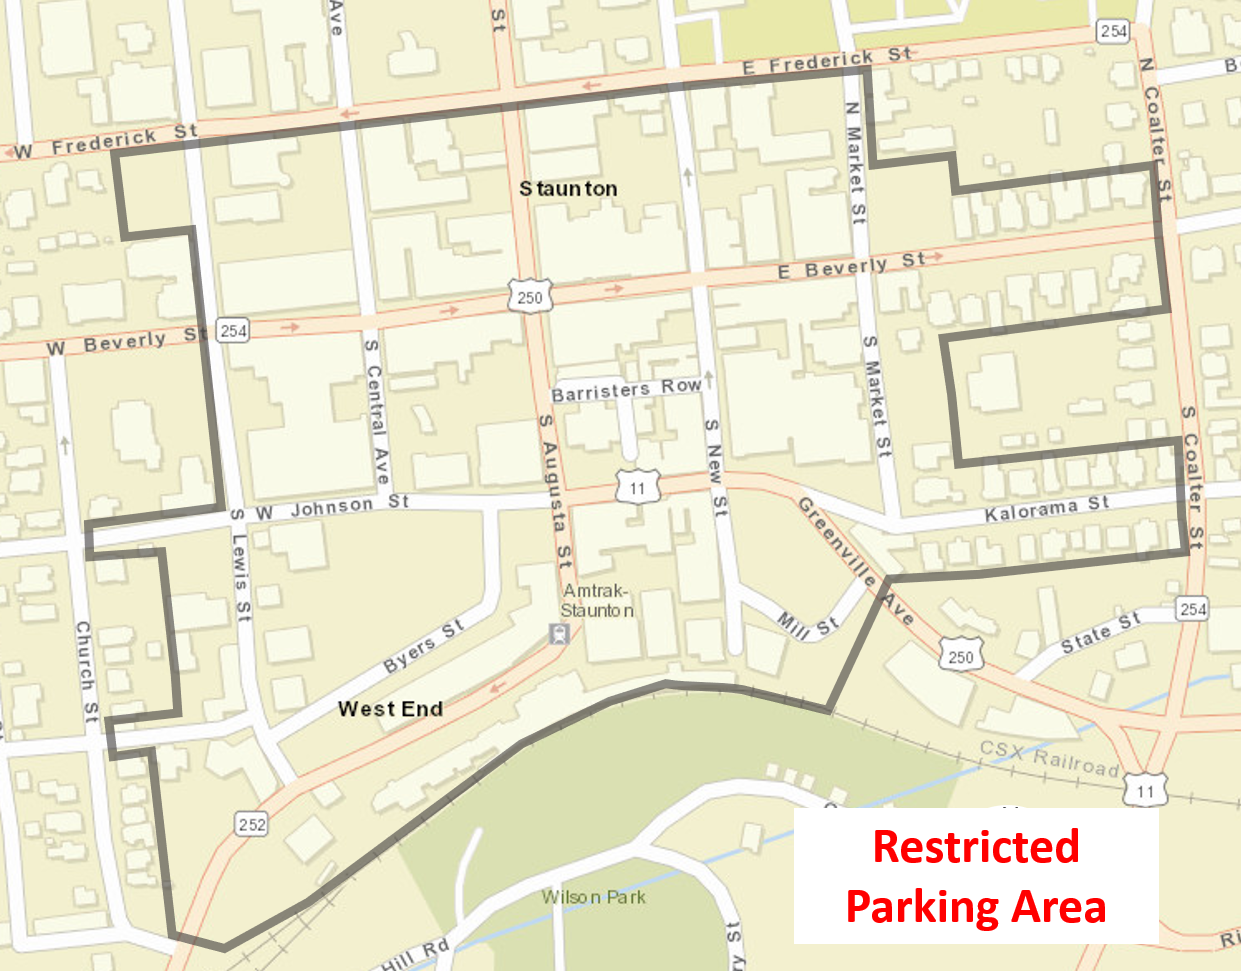 Restricted Parking Map_QCMM